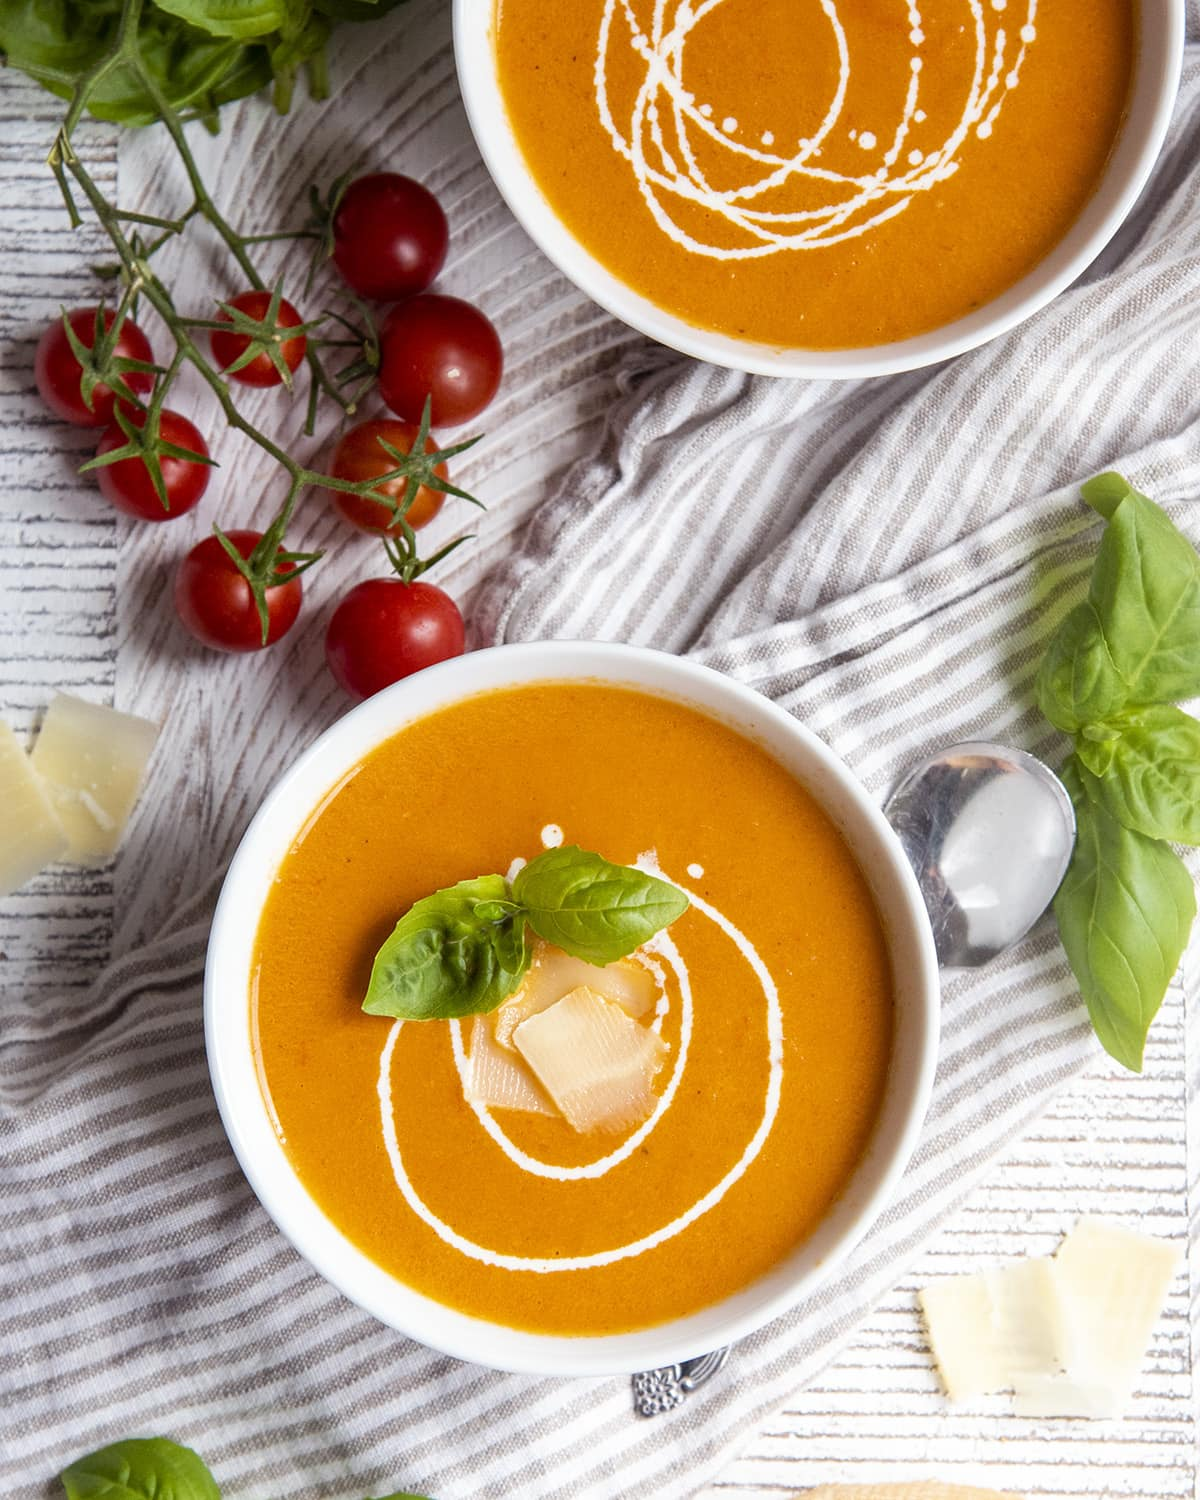 An overhead shot of two bowls of tomato basil soup.